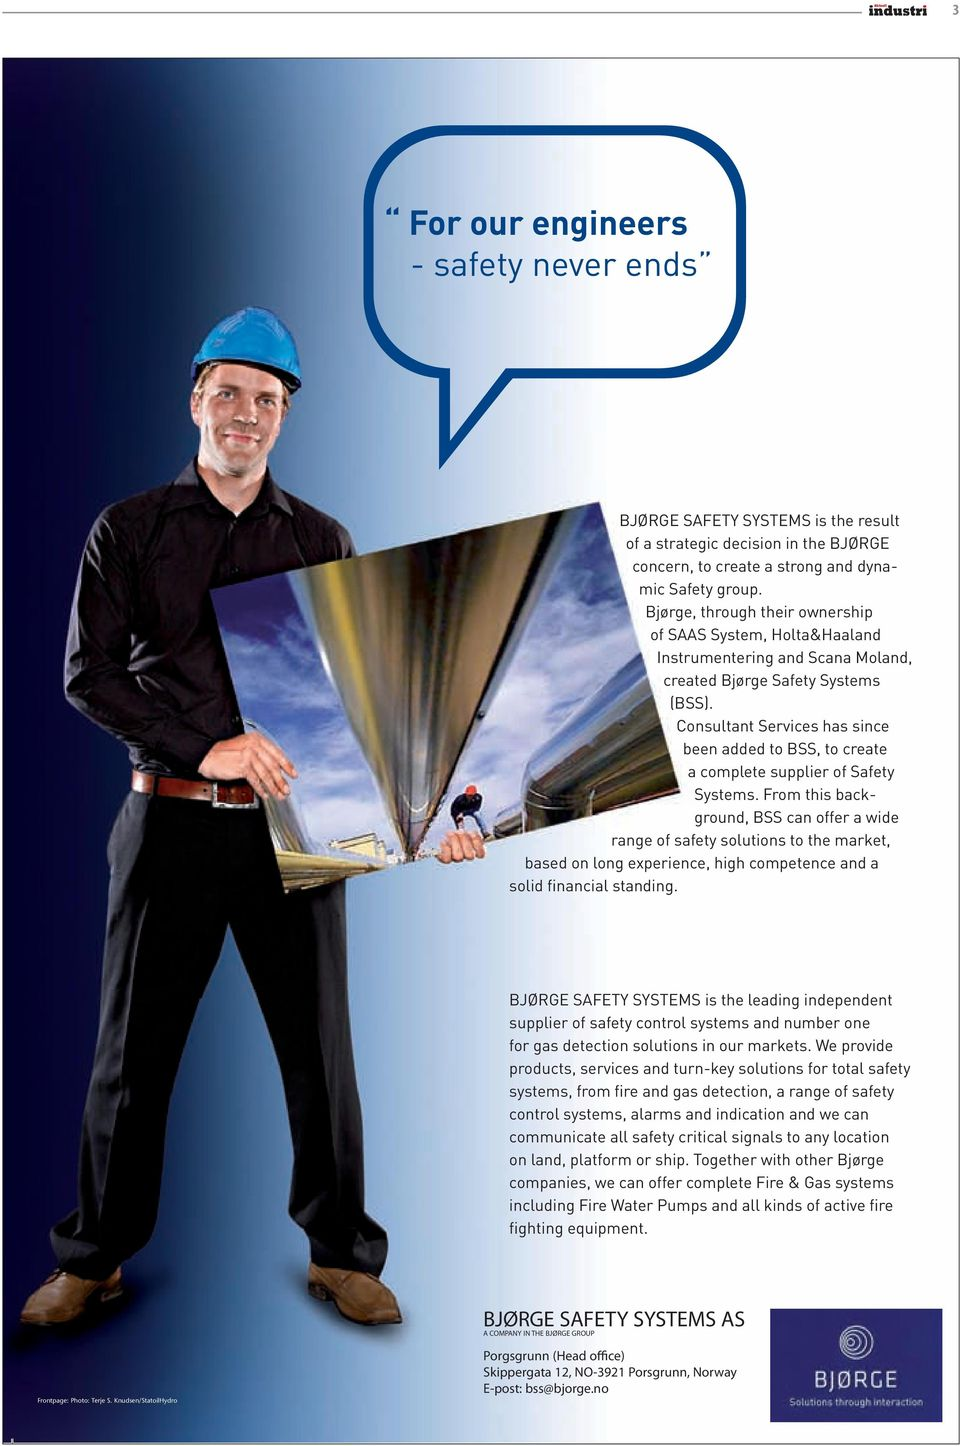 Consultant Services has since been added to BSS, to create a complete supplier of Safety Systems.